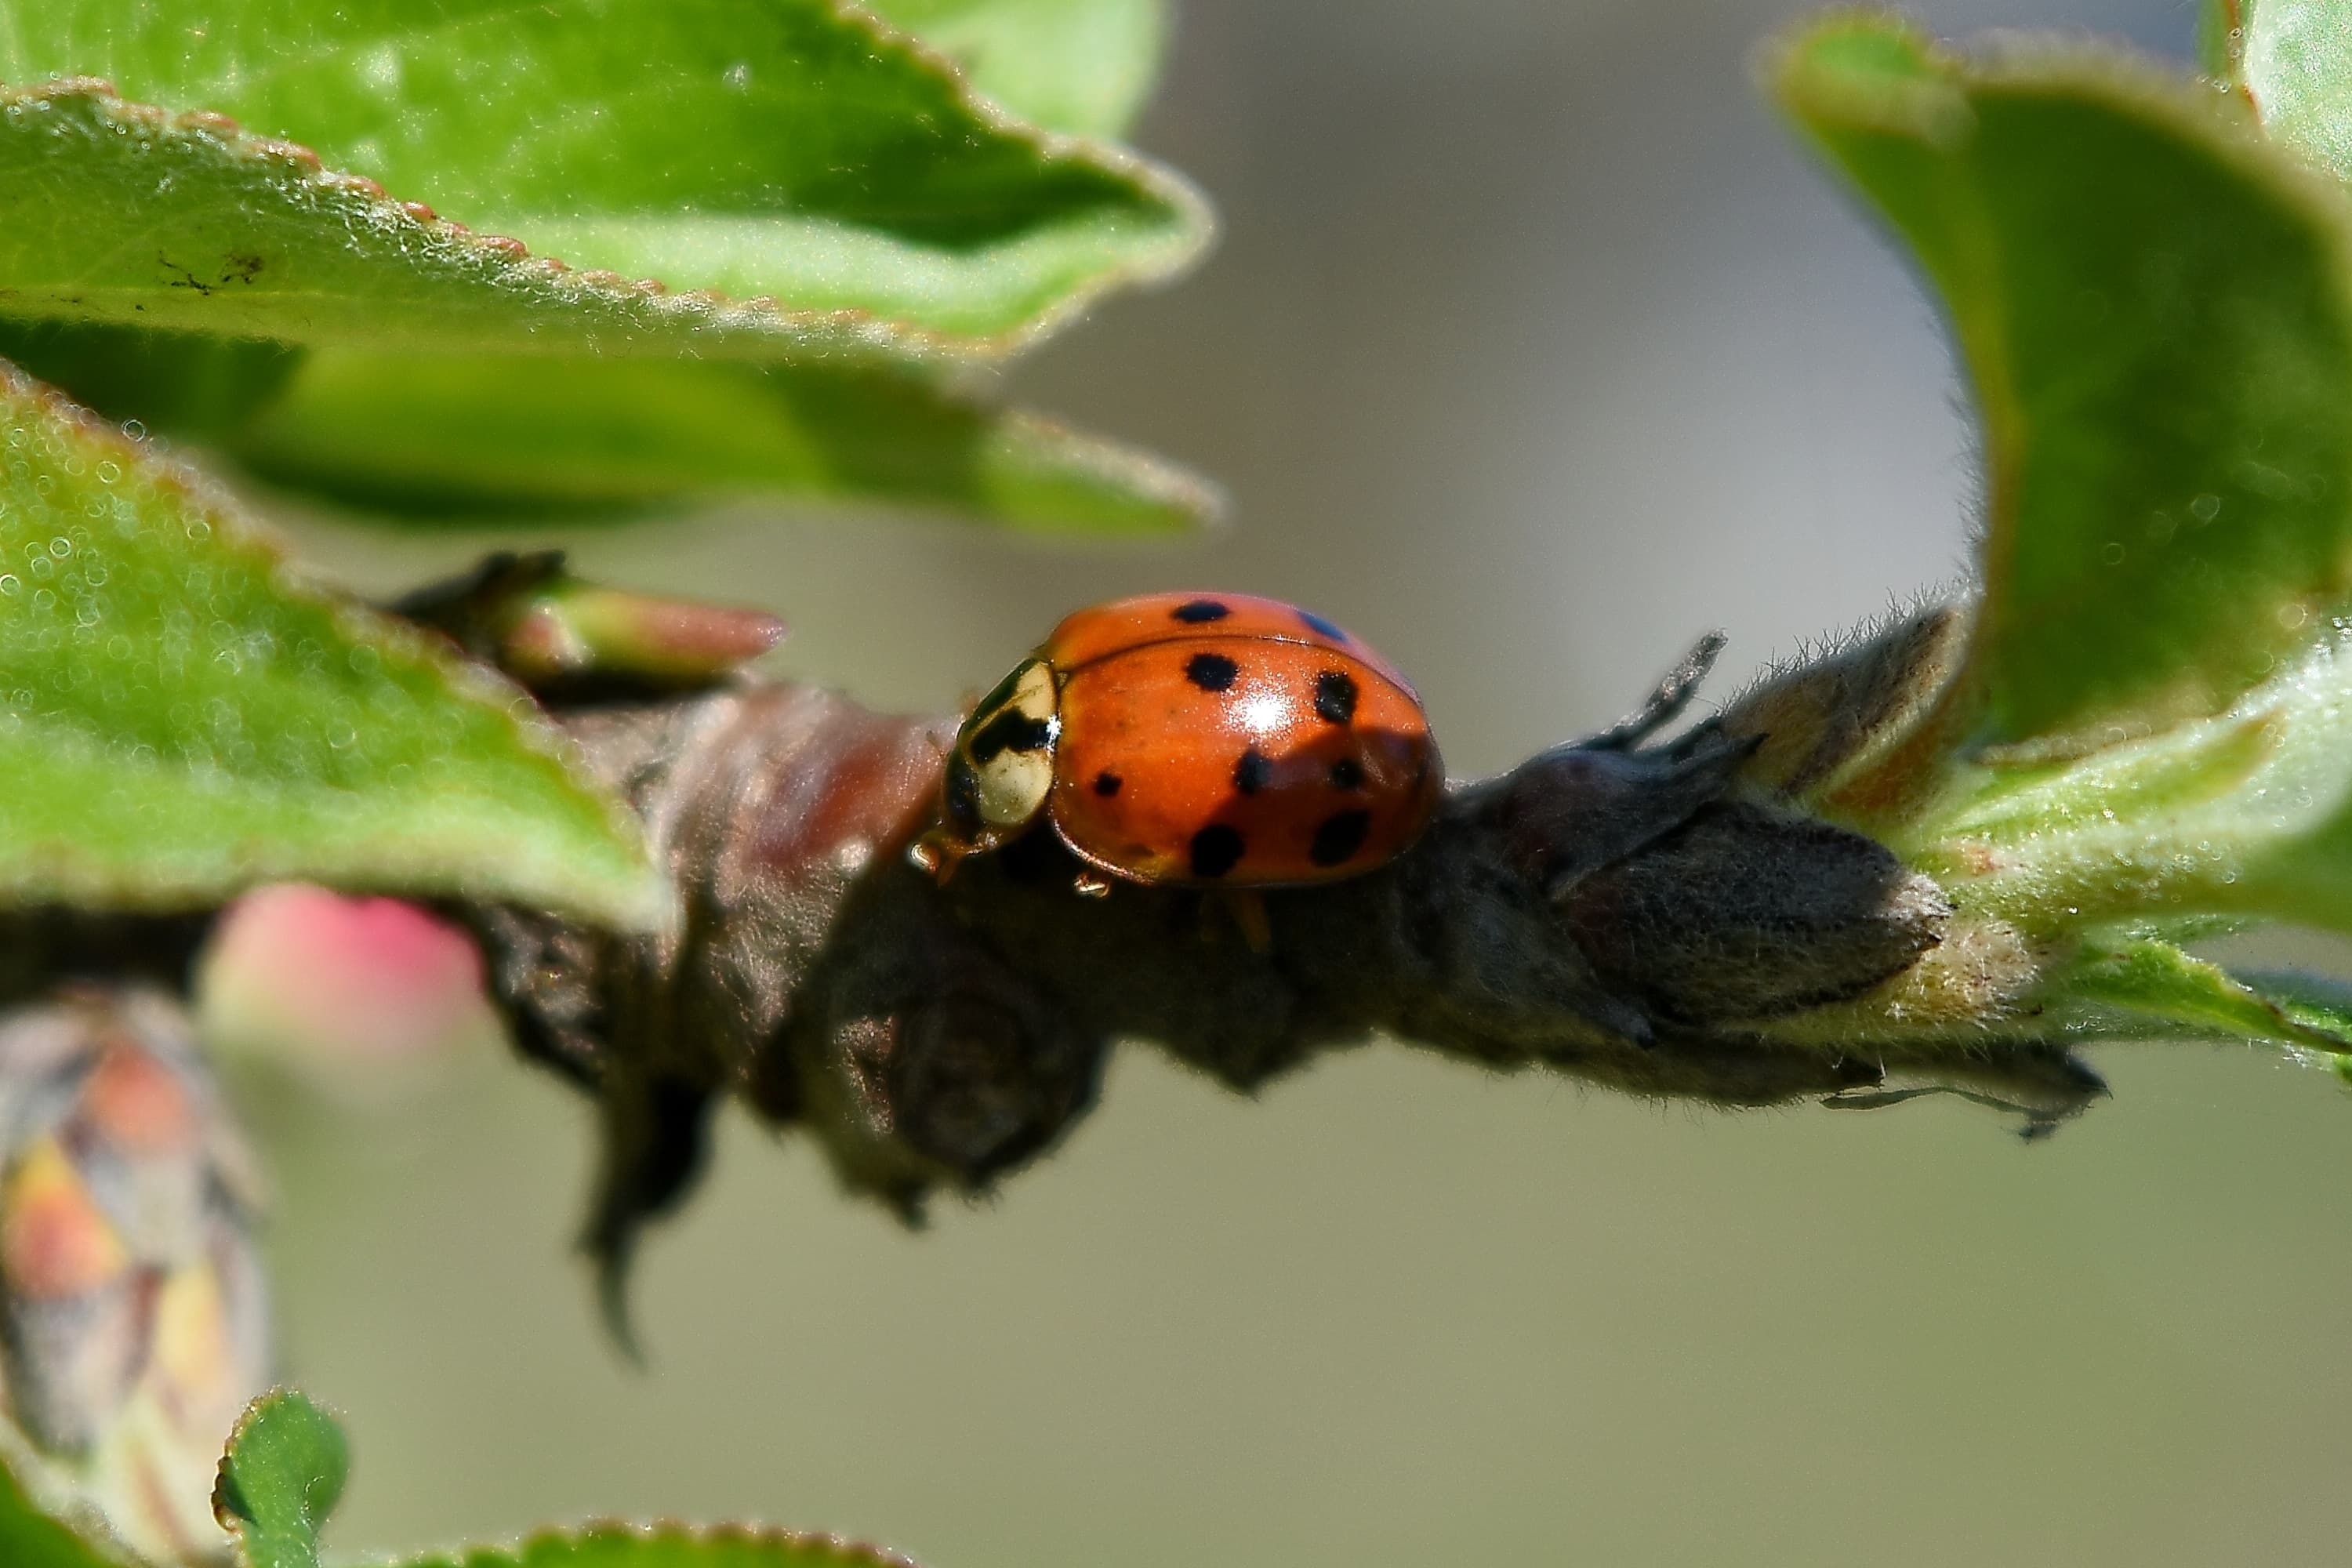 Free Picture: Ladybug, Garden, Plant, Spring, Bug, Insect ...